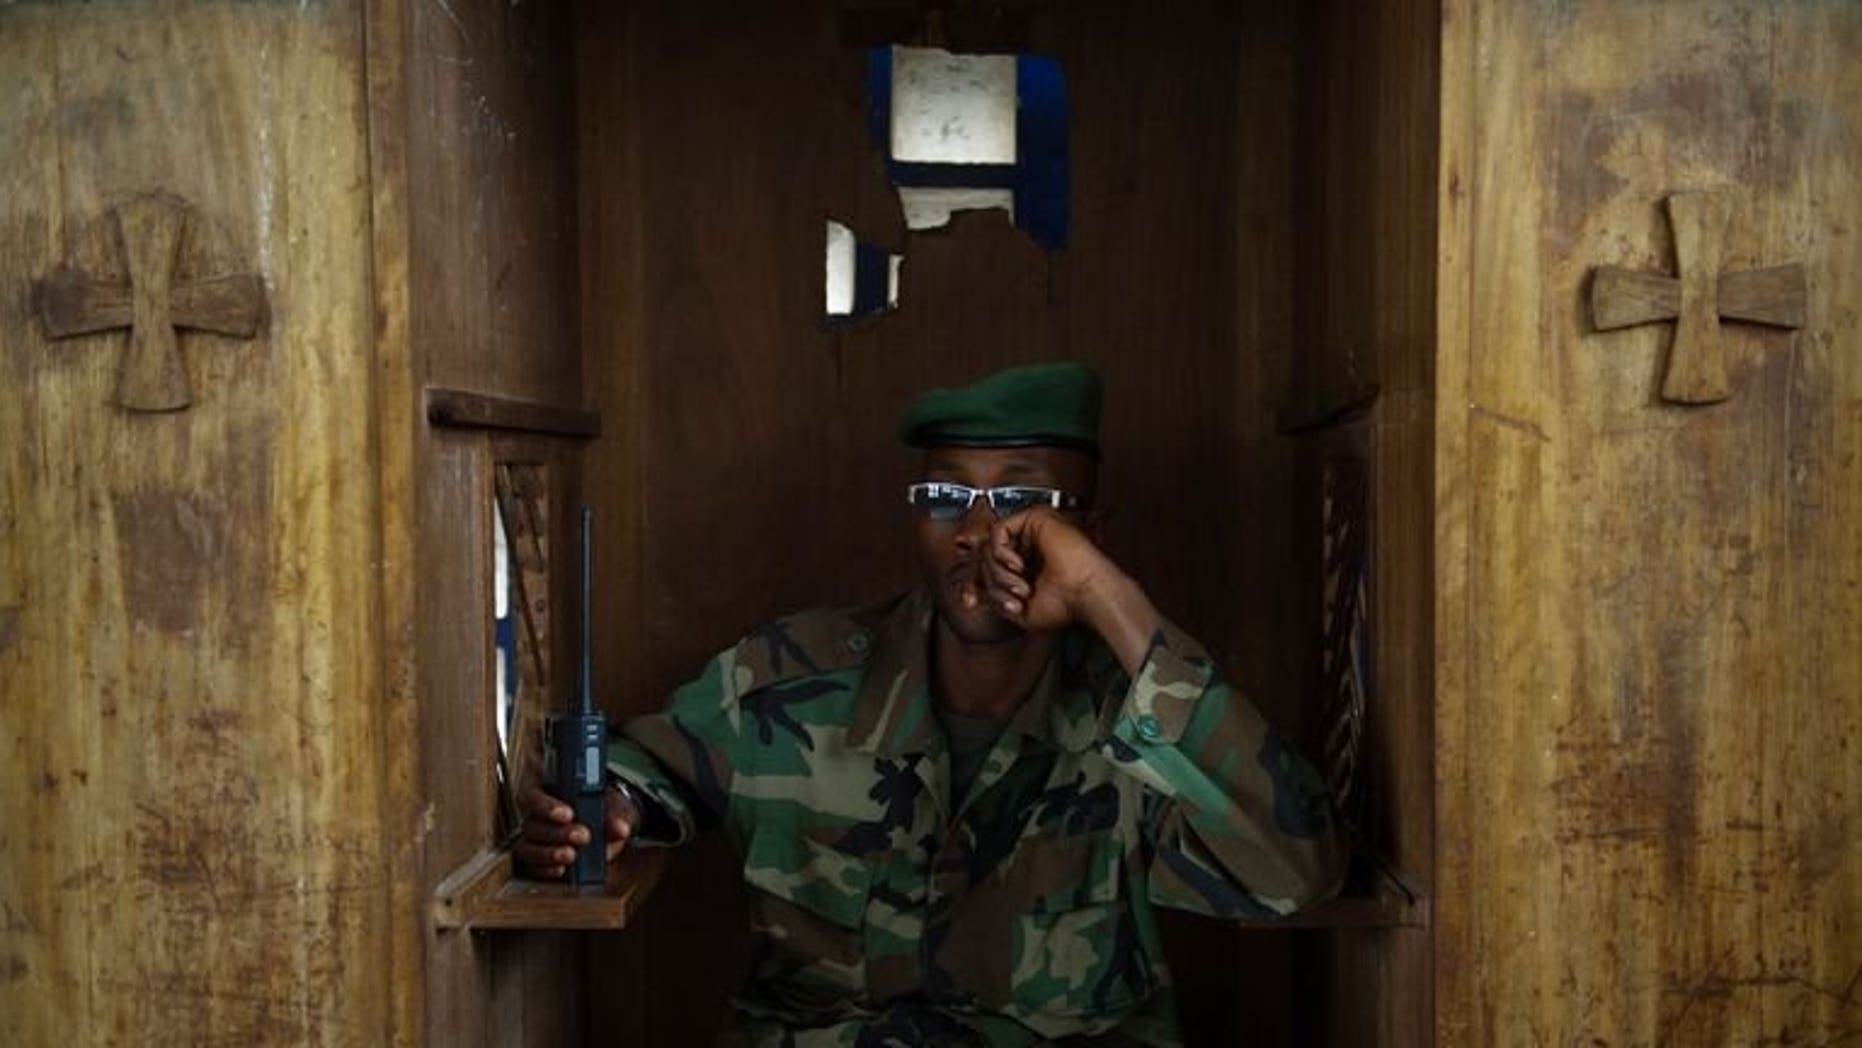 An M23 soldier sits in a confession booth in a church during a session to teach the rebel movement's values in Rumangabo in the east of the Democratic Republic of Congo, on July 20, 2013. Mediators in peace talks between Democratic Republic of Congo's government and M23 rebels admitted Friday the sides were yet to negotiate face-to-face, but insisted that progress was still being made.